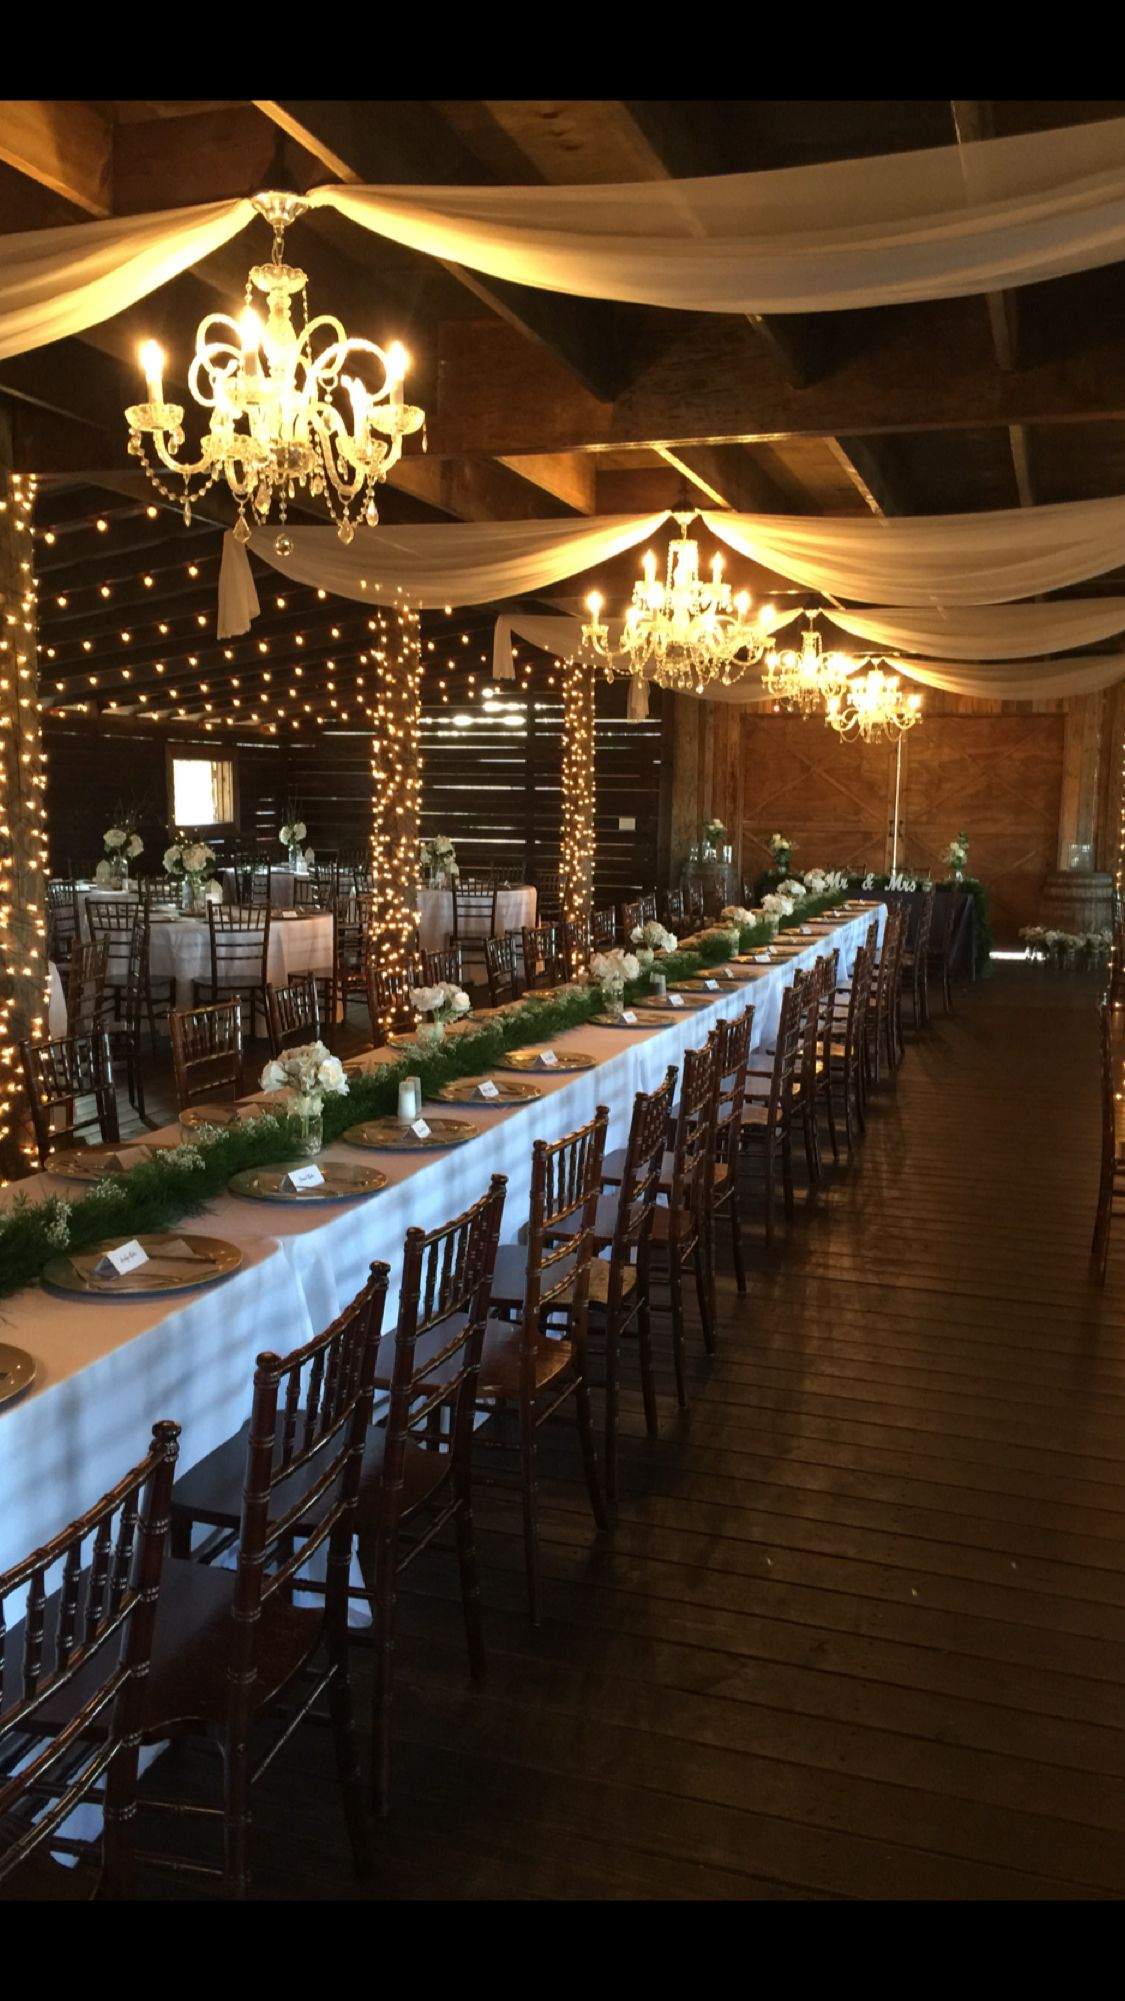 The Enchanting Barn Osteen, FL Rustic, elegant venue